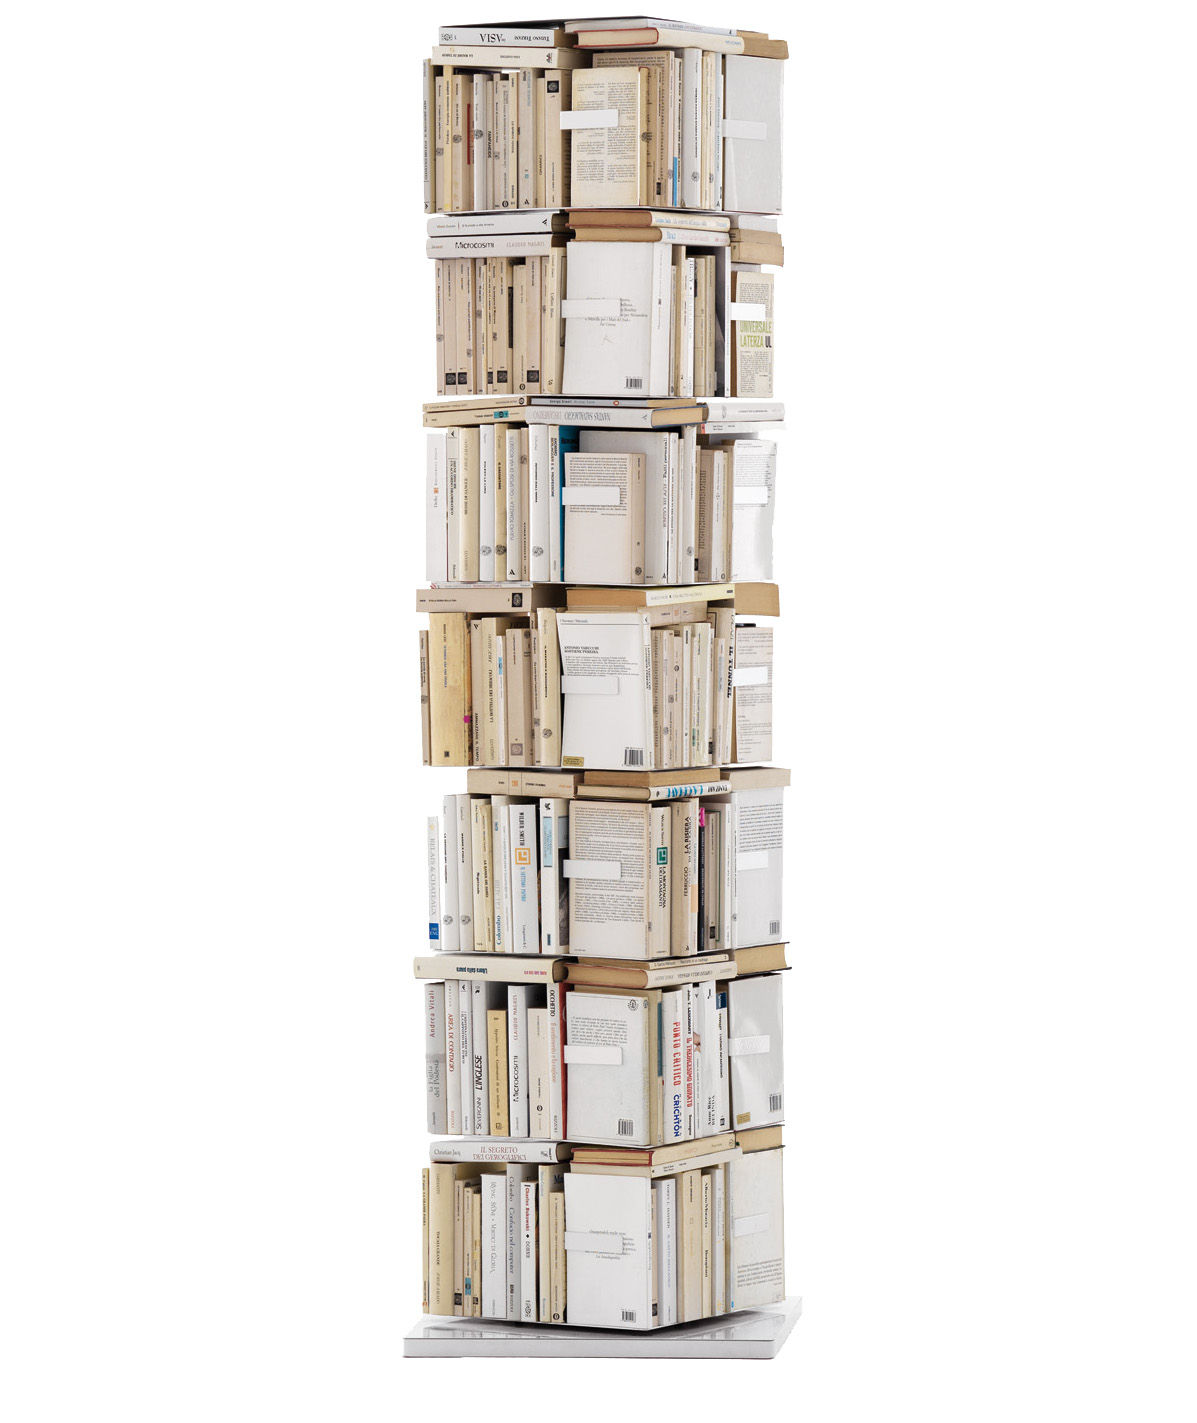 Furniture - Bookcases & Bookshelves - Ptolomeo Rotating bookshelf - 4 sides - Vertical storage by Opinion Ciatti - White - H 197 cm - Lacquered steel